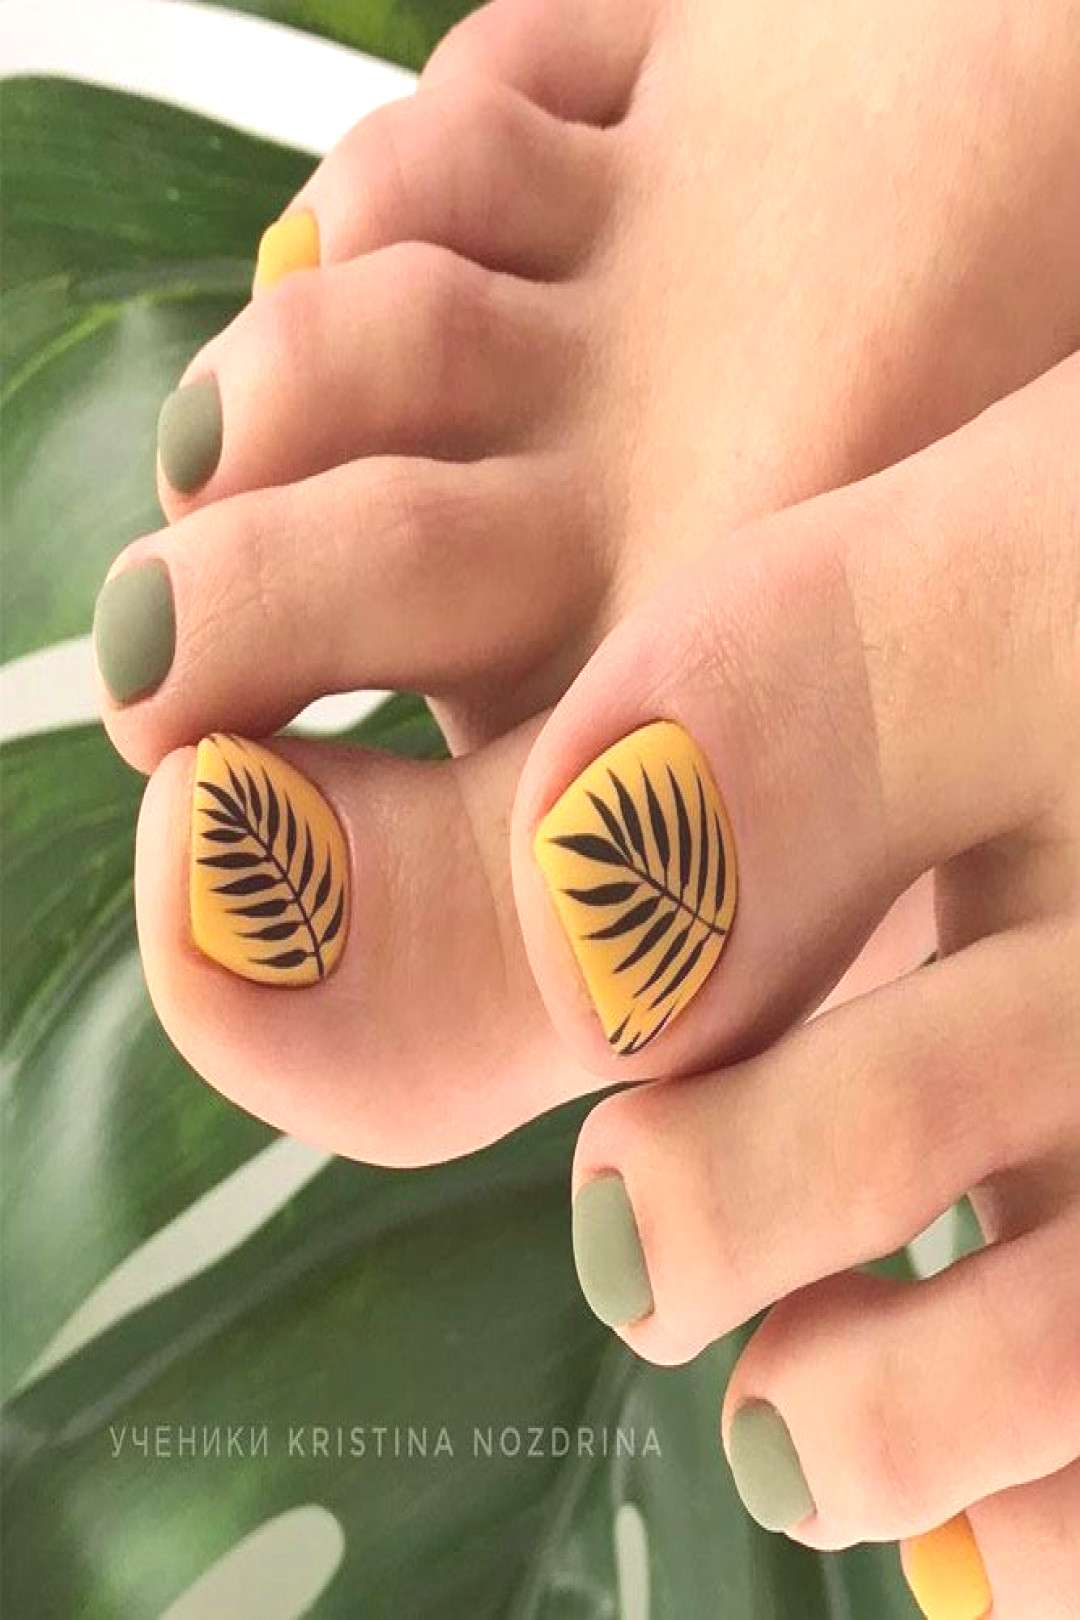 Matte Toe Nails With Leaves Pattern ★ Keeping your toes immaculate is as important as taking care